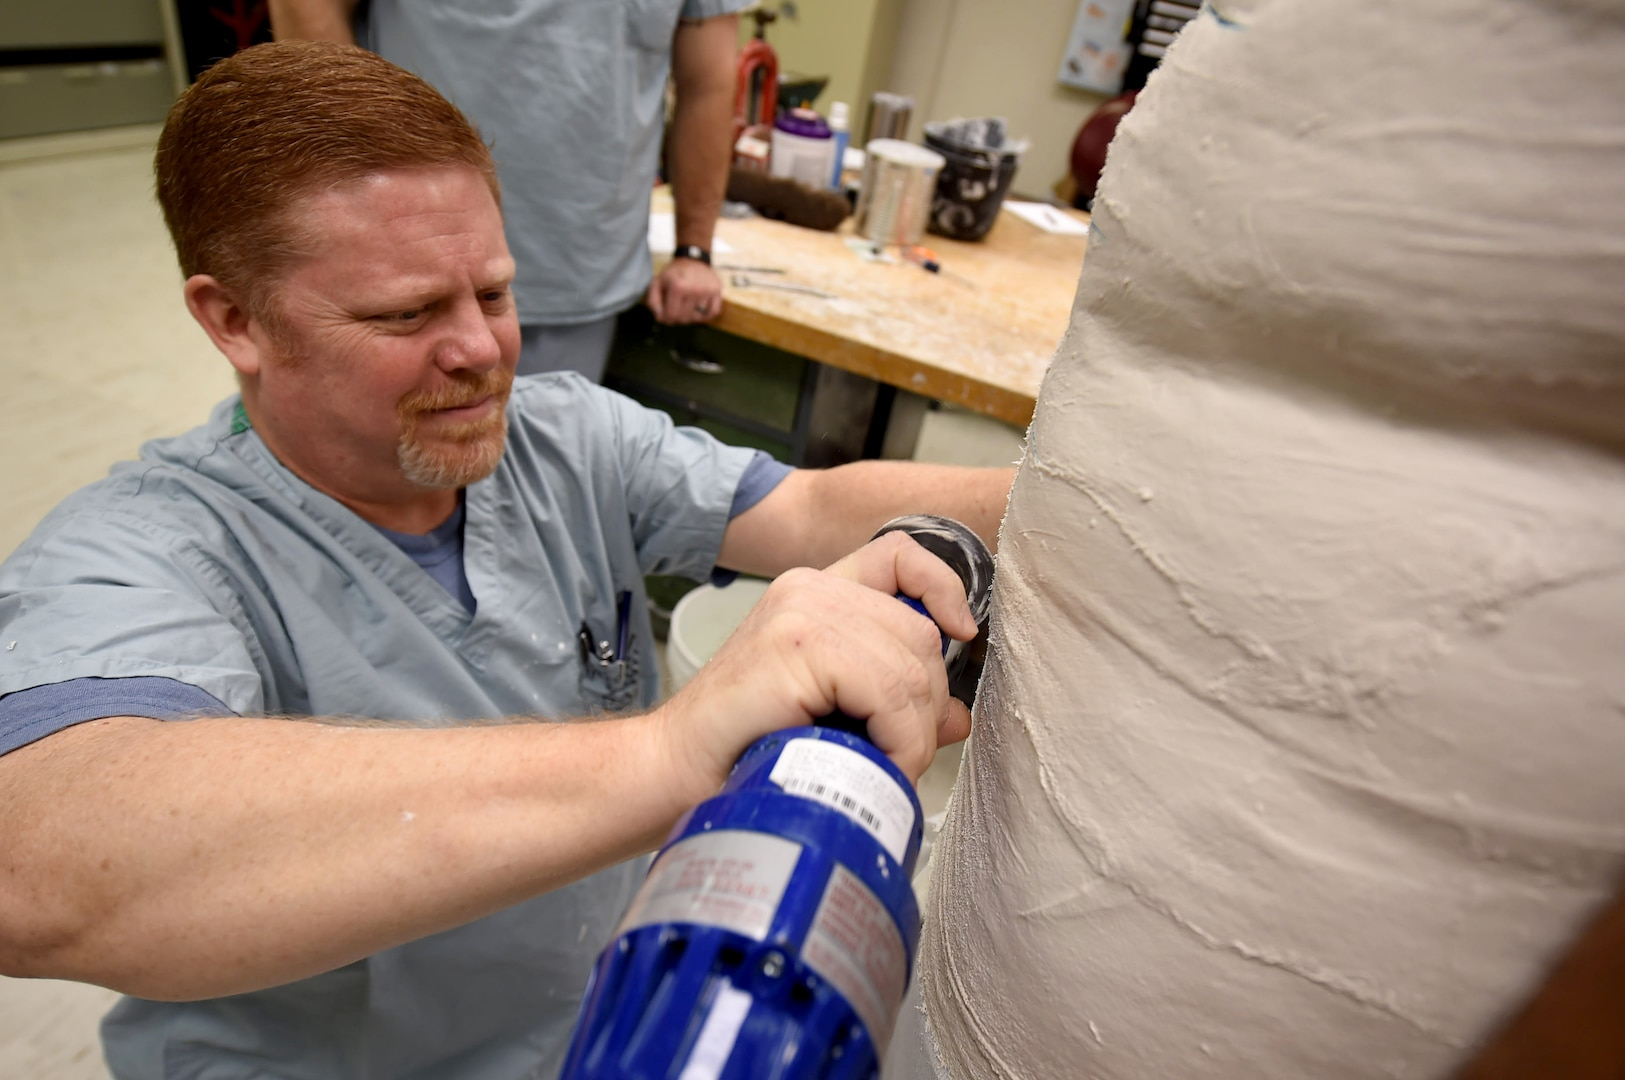 Lawrence New, a 59th Medical Wing orthotist and orthotics instructor, cuts through a plaster mold at the Wilford Hall Ambulatory Surgical Center, Joint Base San Antonio-Lackland, Texas, Aug. 24, 2016. (U.S. Air Force photo/Staff Sgt. Jerilyn Quintanilla)